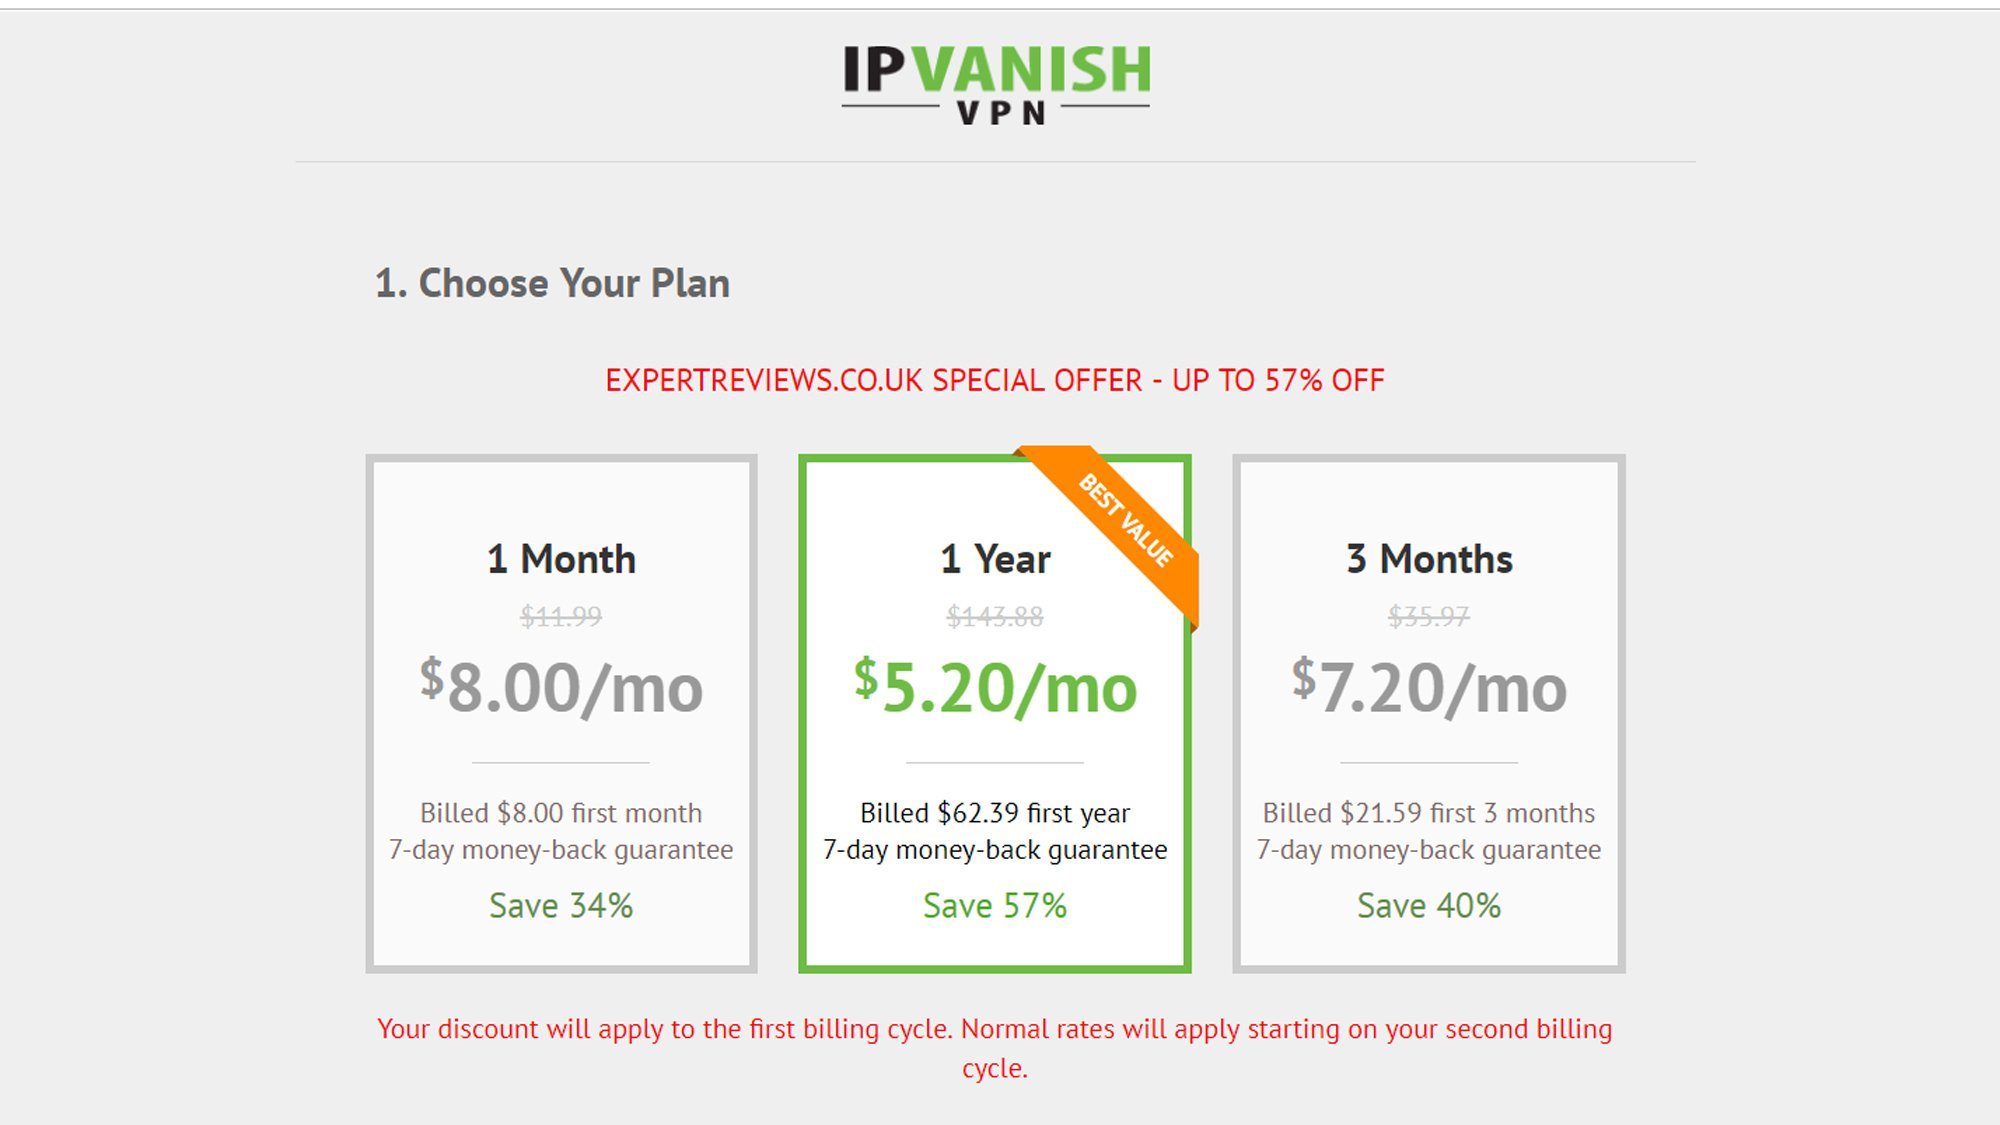 Online Voucher Code Printable 25 Ip Vanish